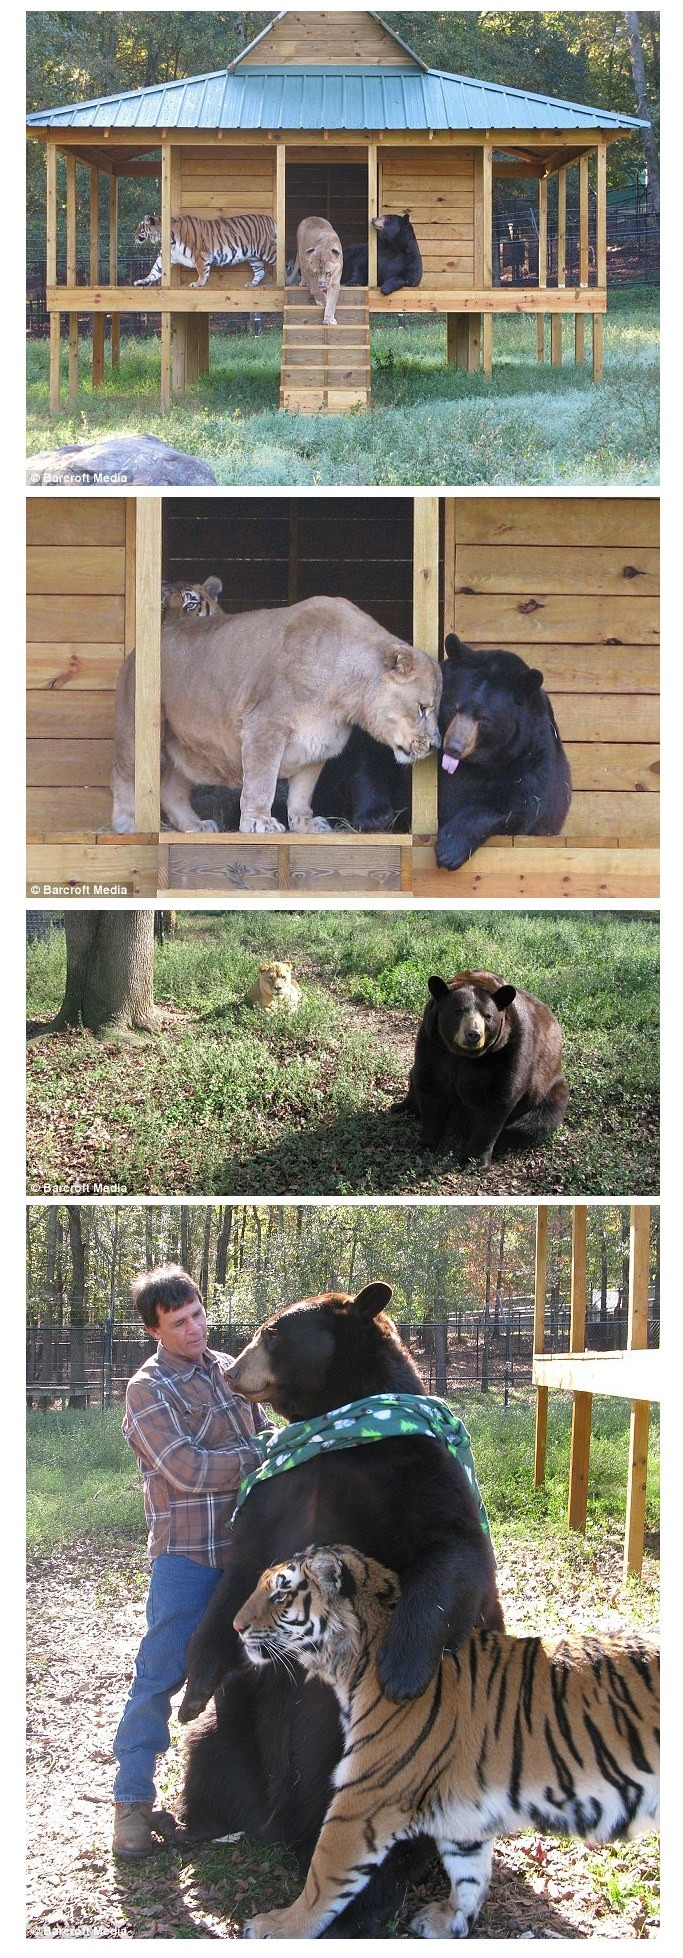 tigers, lions & bears.. oh my!